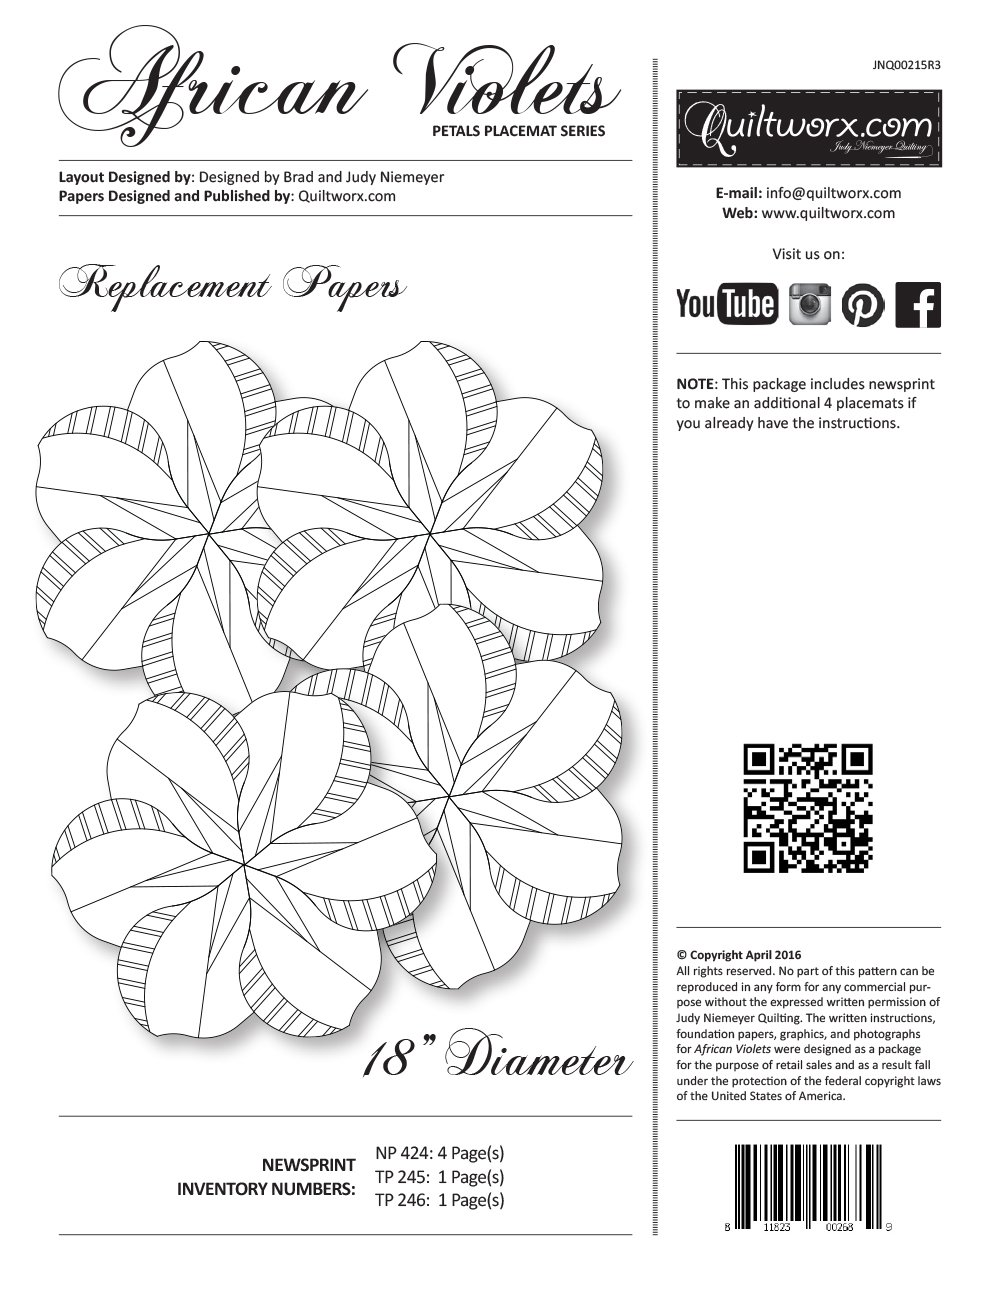 African Violets Replacement Papers